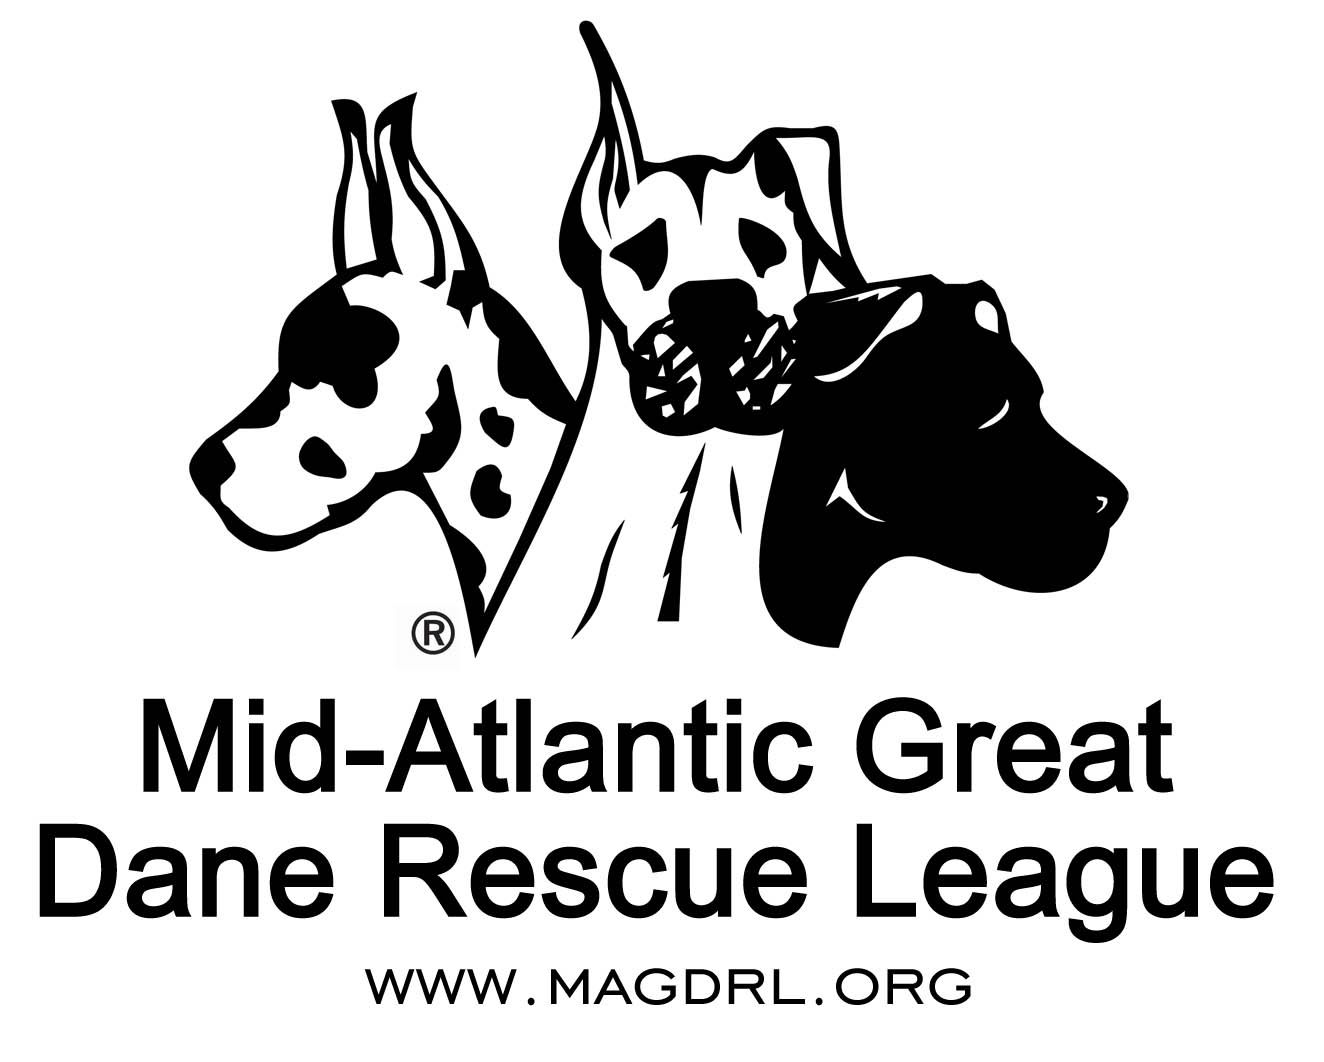 Mid Atlantic Great Dane Rescue League Magdrl Helps Danes And